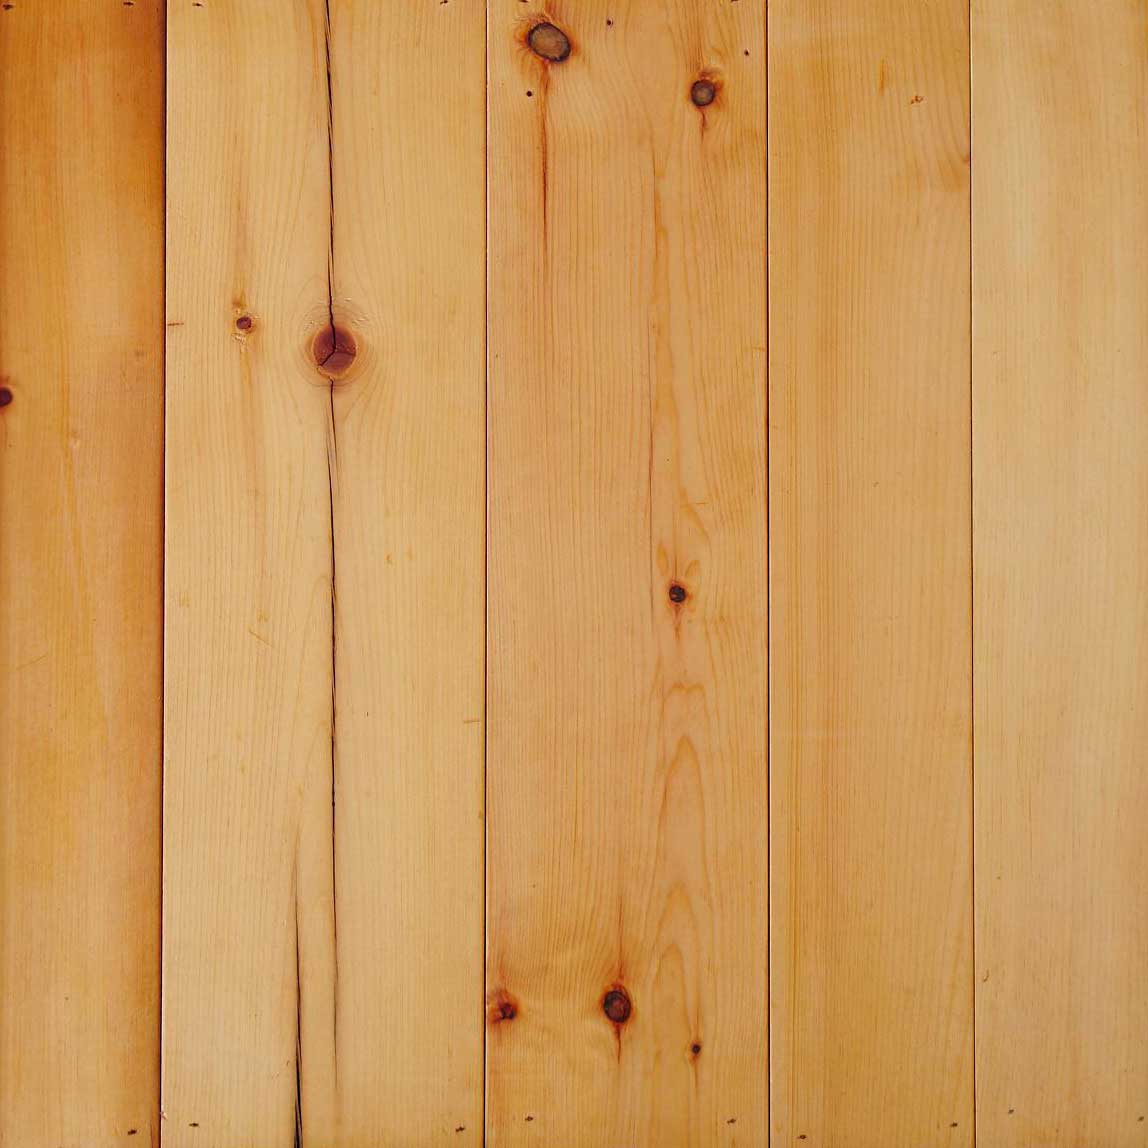 Rustic Pumpkin Wood Background